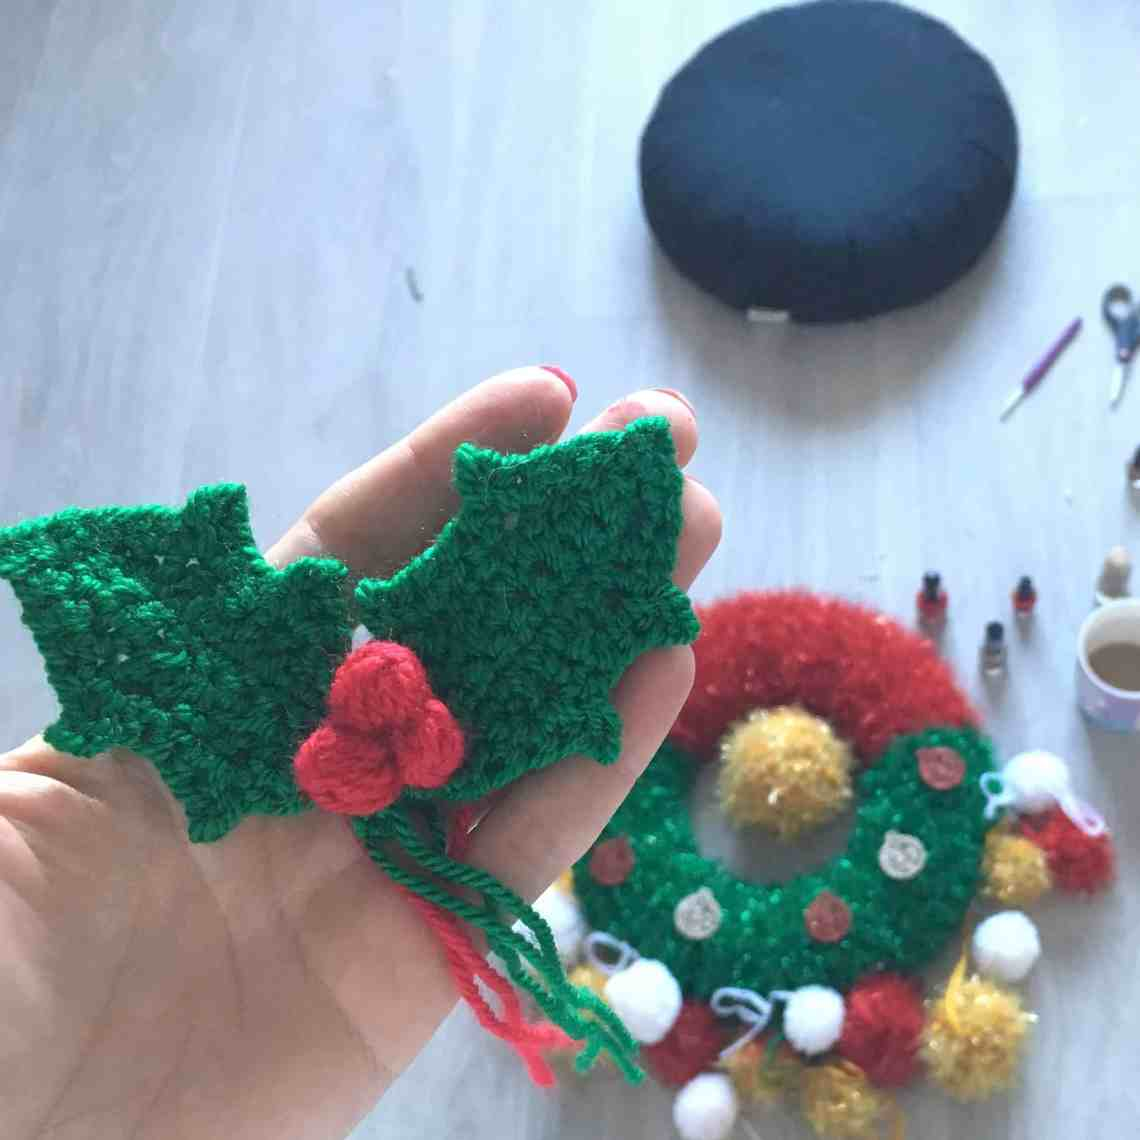 crochet holly sprig and wreath making in progress